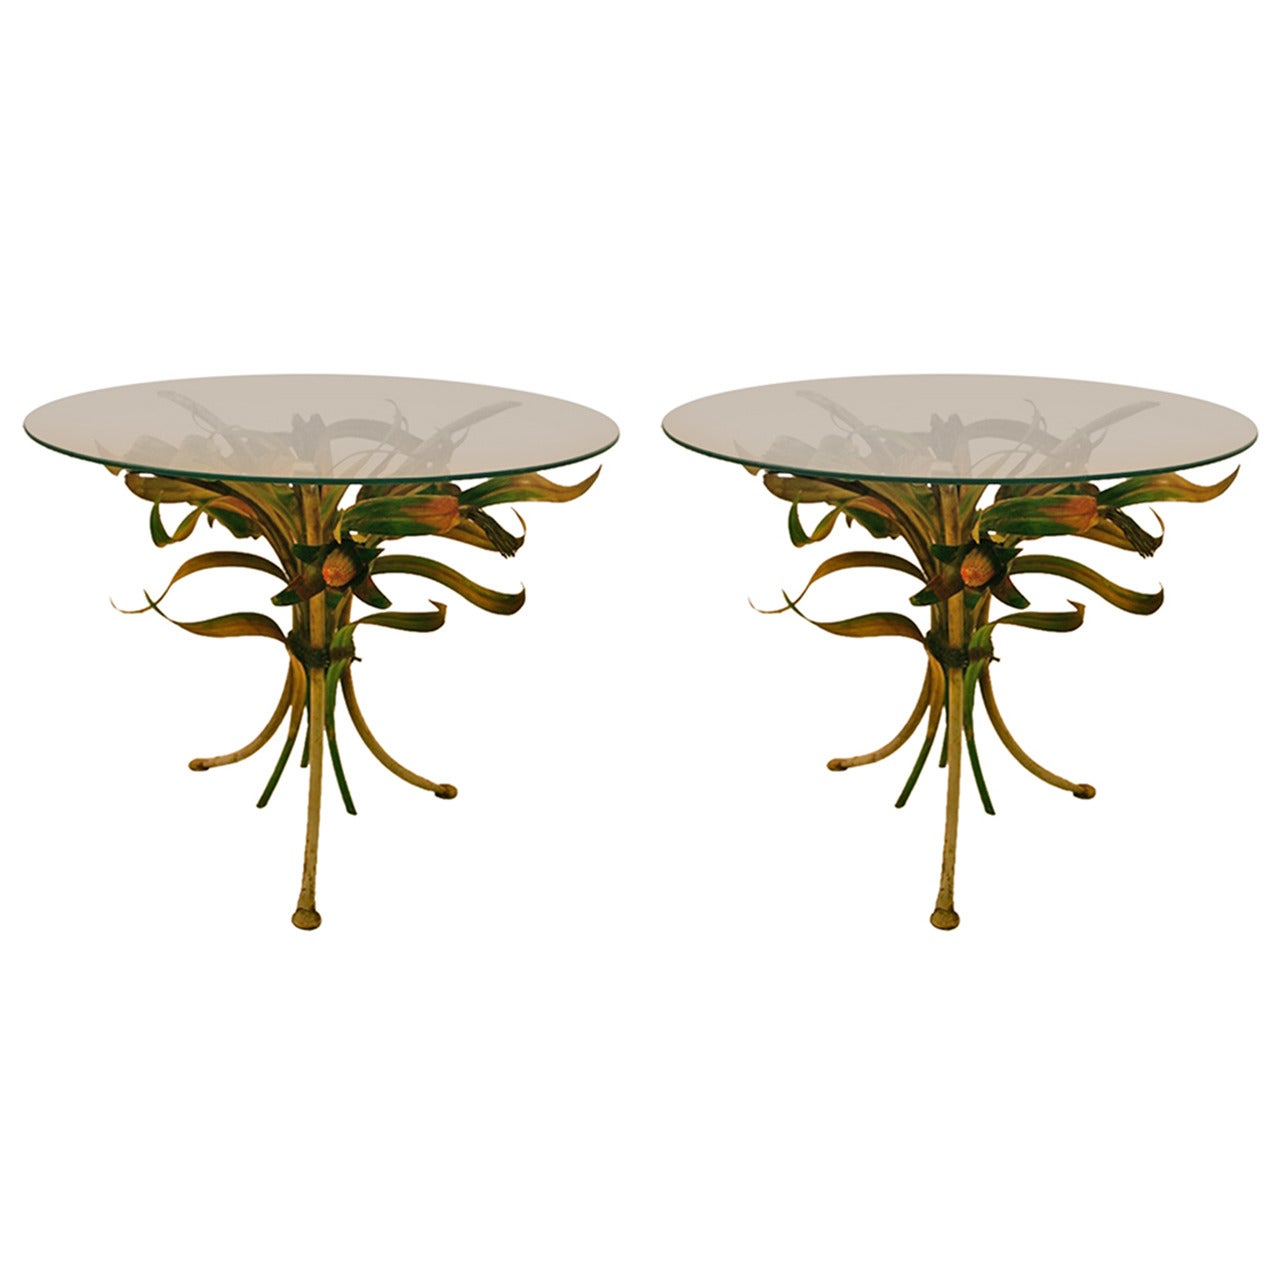 Pair of Polychrome Italian Metal and Glass Foliate Tables